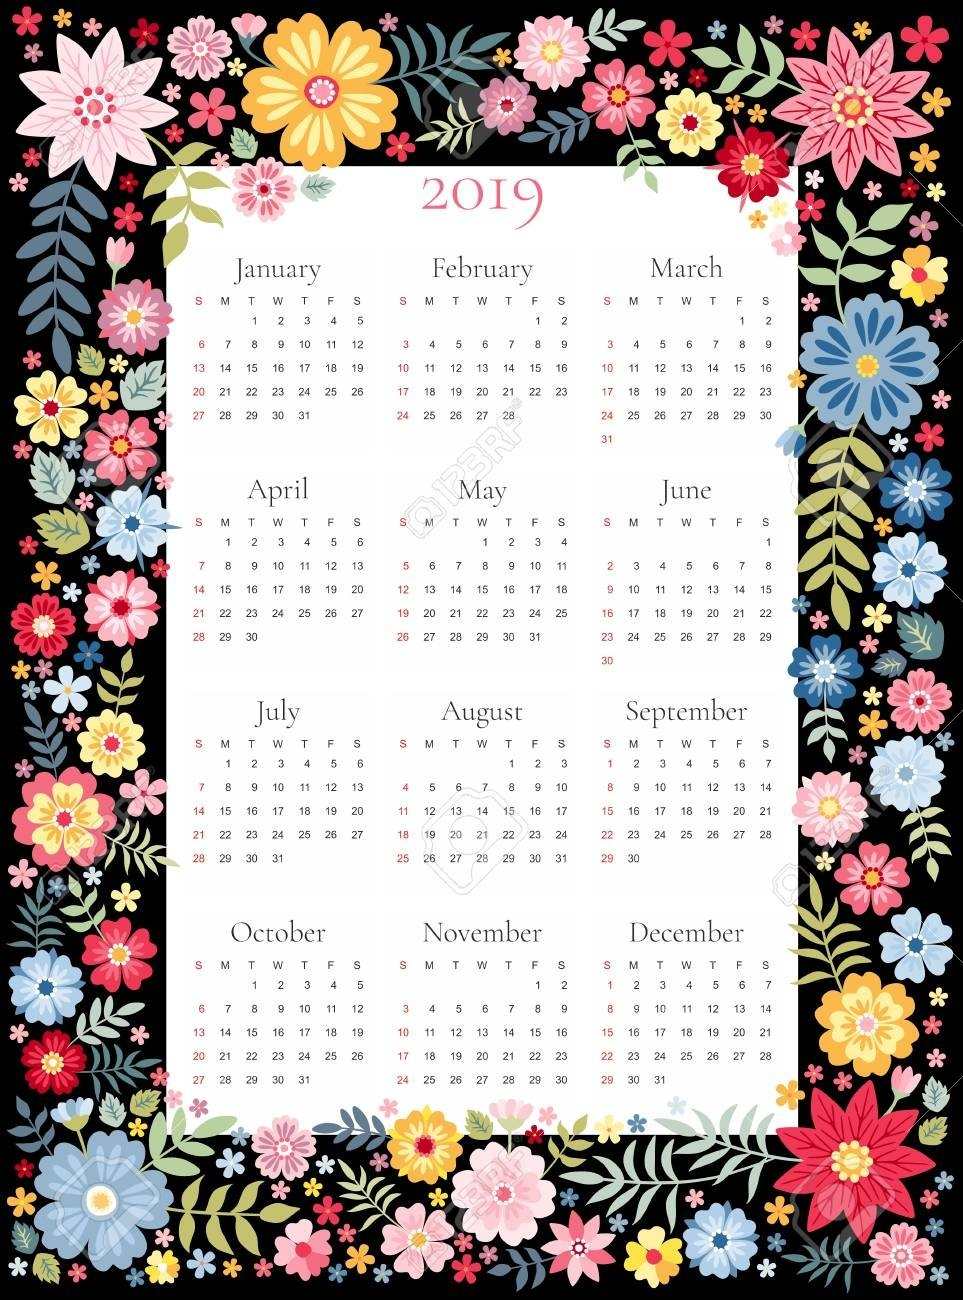 Calendar For 2019 Year. Vector Template In Floral Frame With Calendar 2019 Flowers